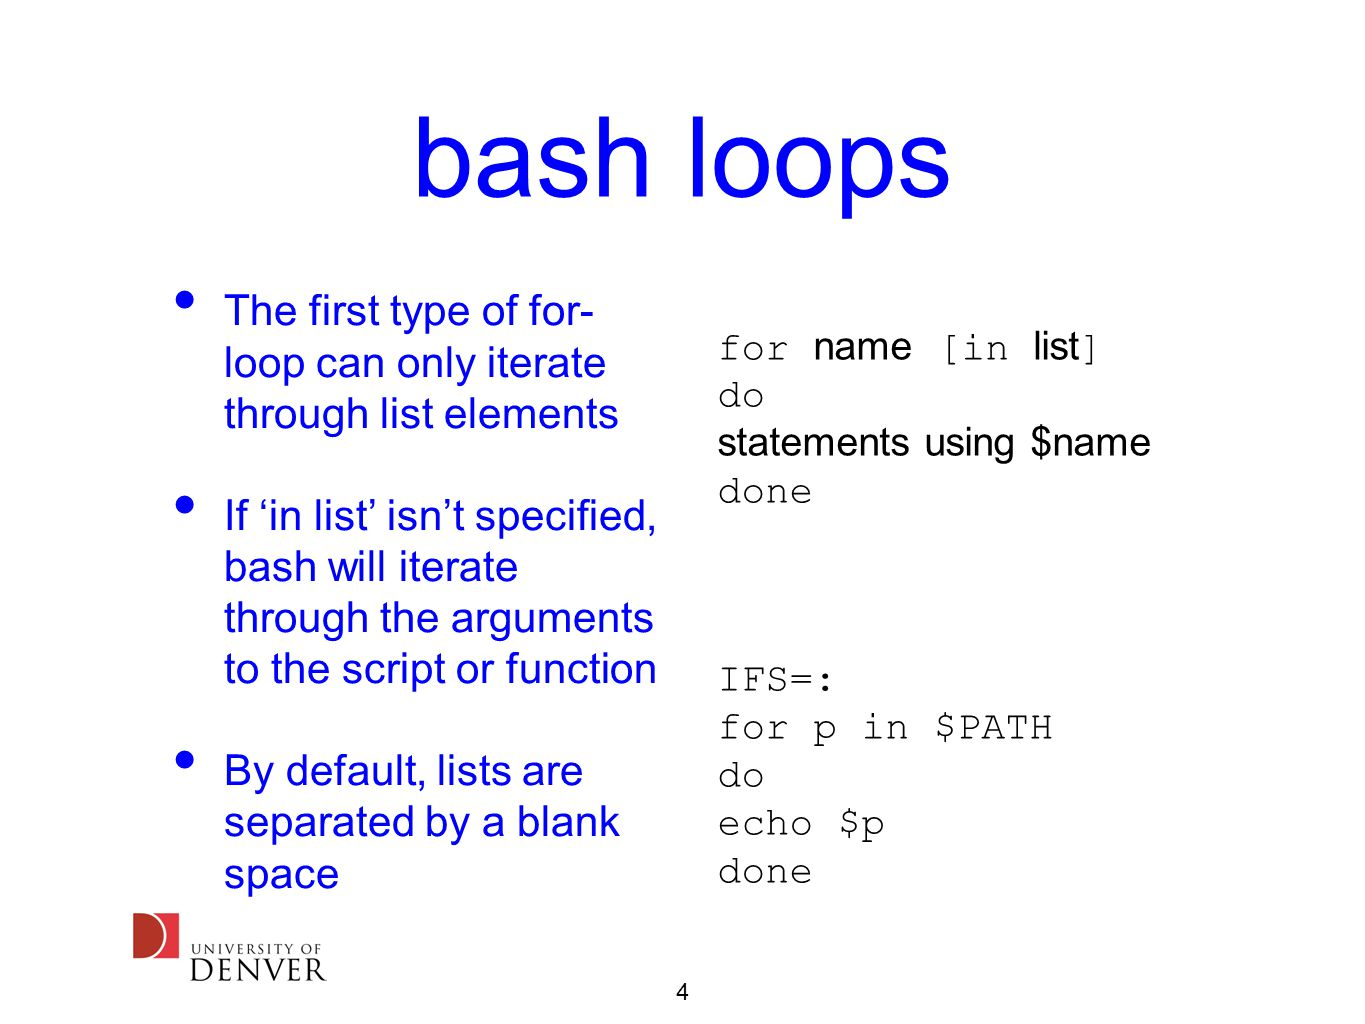 4 bash loops The first type of for- loop can only iterate through list elements If 'in list' isn't specified, bash will iterate through the arguments to the script or function By default, lists are separated by a blank space IFS=: for p in $PATH do echo $p done for name [in list ] do statements using $name done